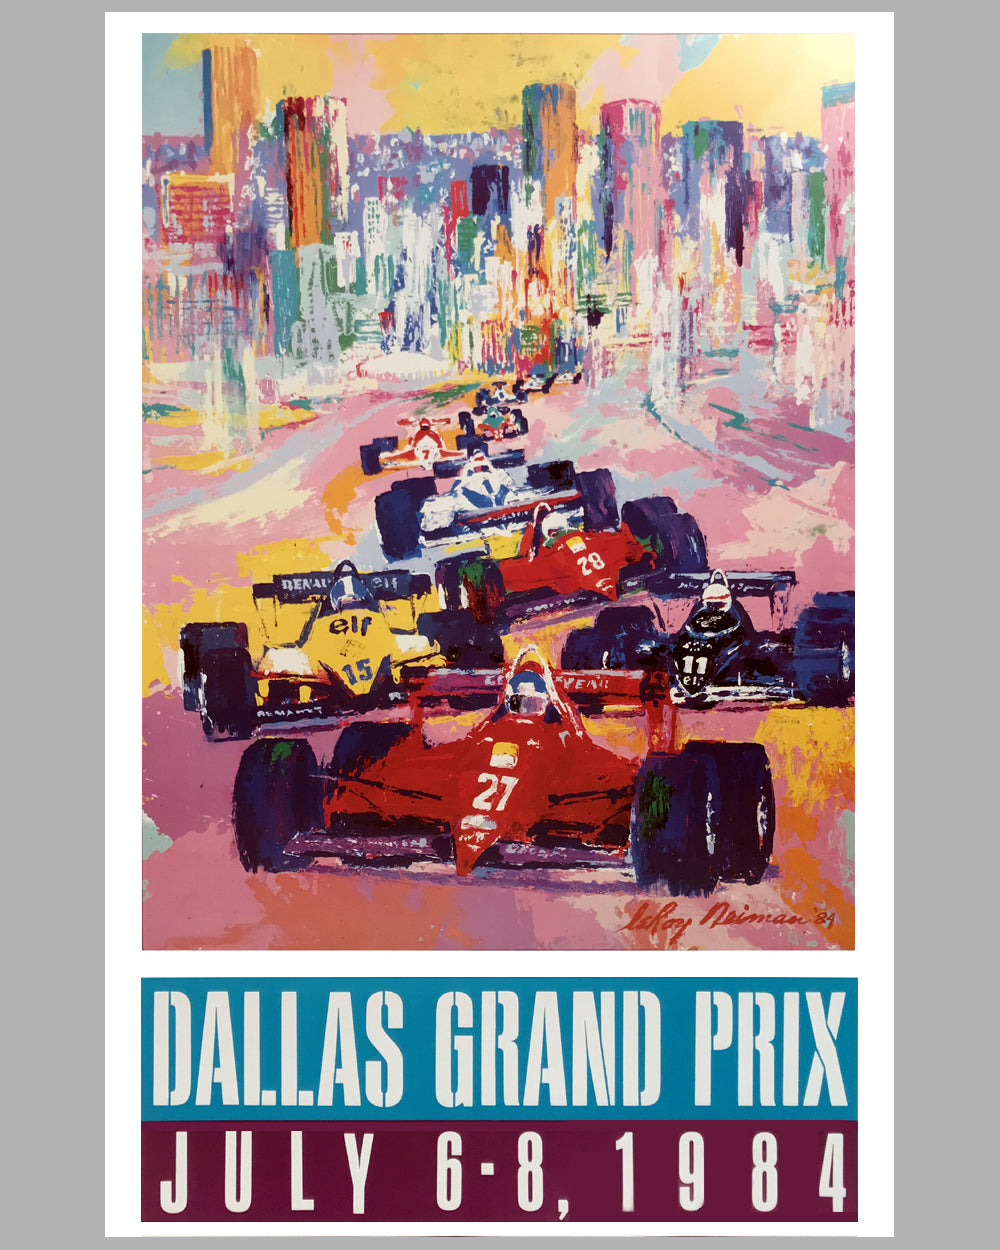 1984 Dallas Grand Prix poster by LeRoy Neiman